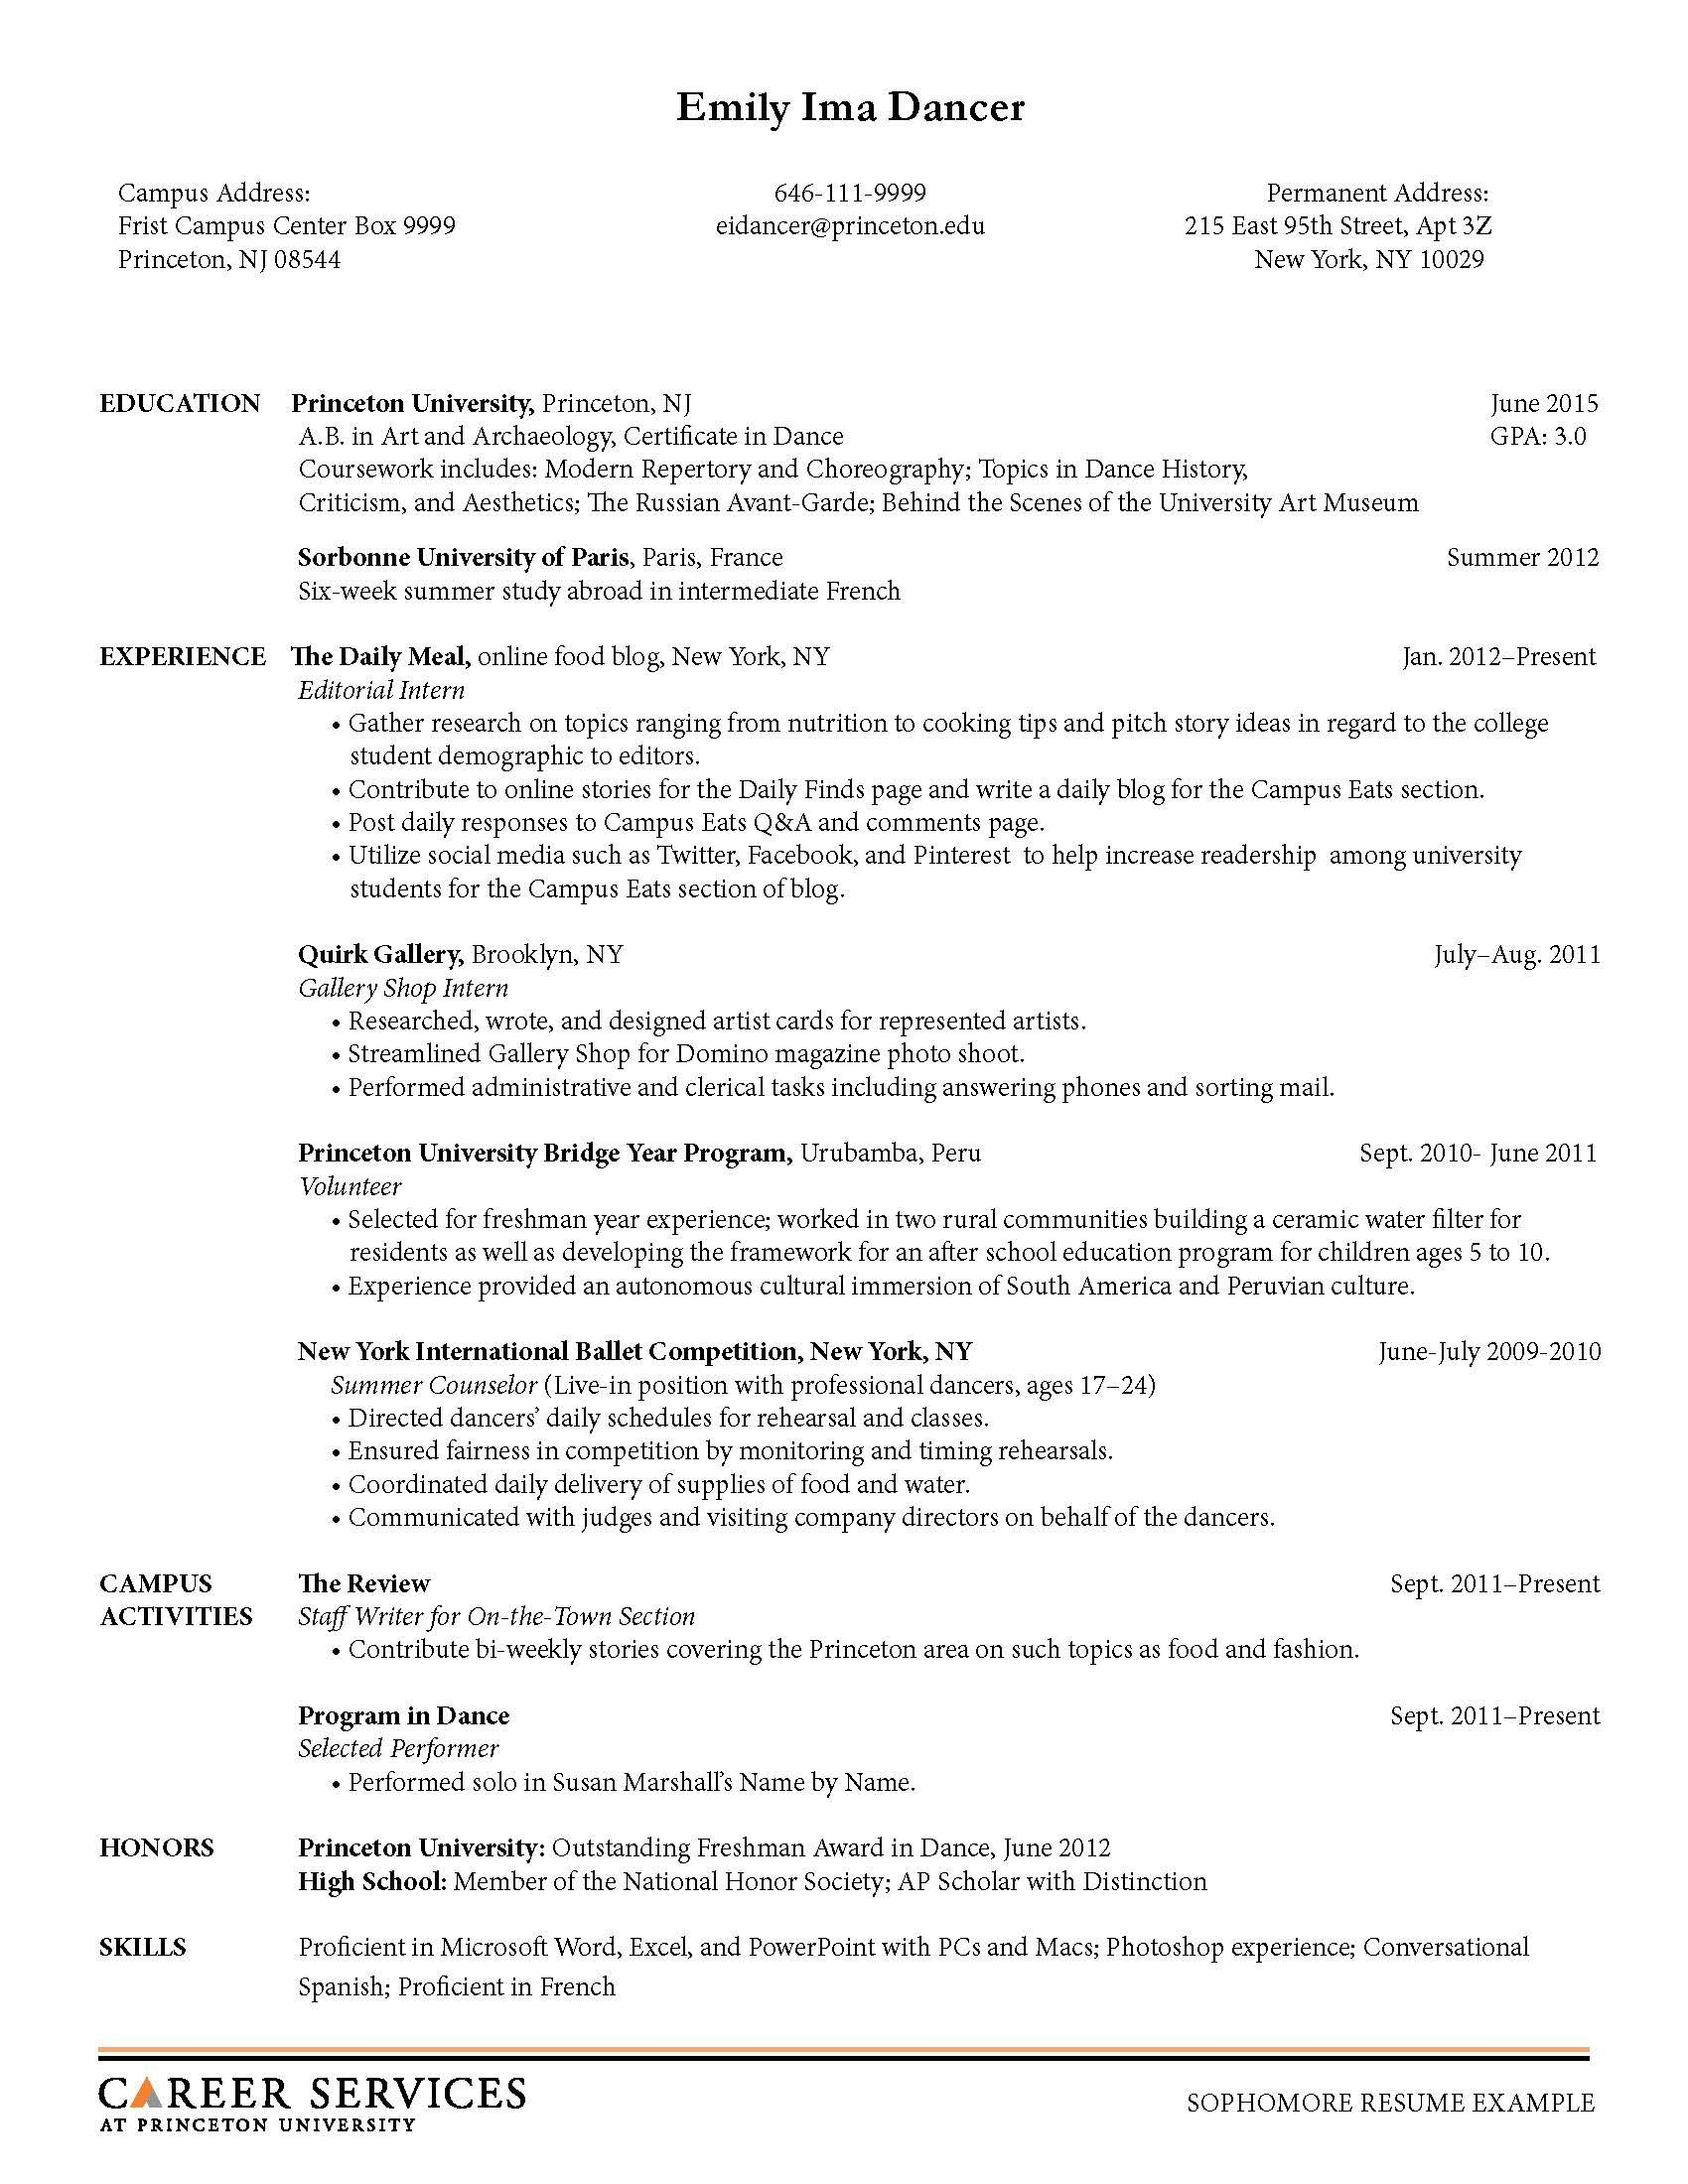 Opposenewapstandardsus  Prepossessing Sample Resume Resume And Career On Pinterest With Fascinating Free Ms Word Resume Templates Besides Resume Catch Phrases Furthermore New Nurse Graduate Resume With Beauteous Best Resume Advice Also Patient Account Representative Resume In Addition Resume Of A Teacher And Resume Student Examples As Well As How Do I Build A Resume Additionally Technical Skills On A Resume From Pinterestcom With Opposenewapstandardsus  Fascinating Sample Resume Resume And Career On Pinterest With Beauteous Free Ms Word Resume Templates Besides Resume Catch Phrases Furthermore New Nurse Graduate Resume And Prepossessing Best Resume Advice Also Patient Account Representative Resume In Addition Resume Of A Teacher From Pinterestcom